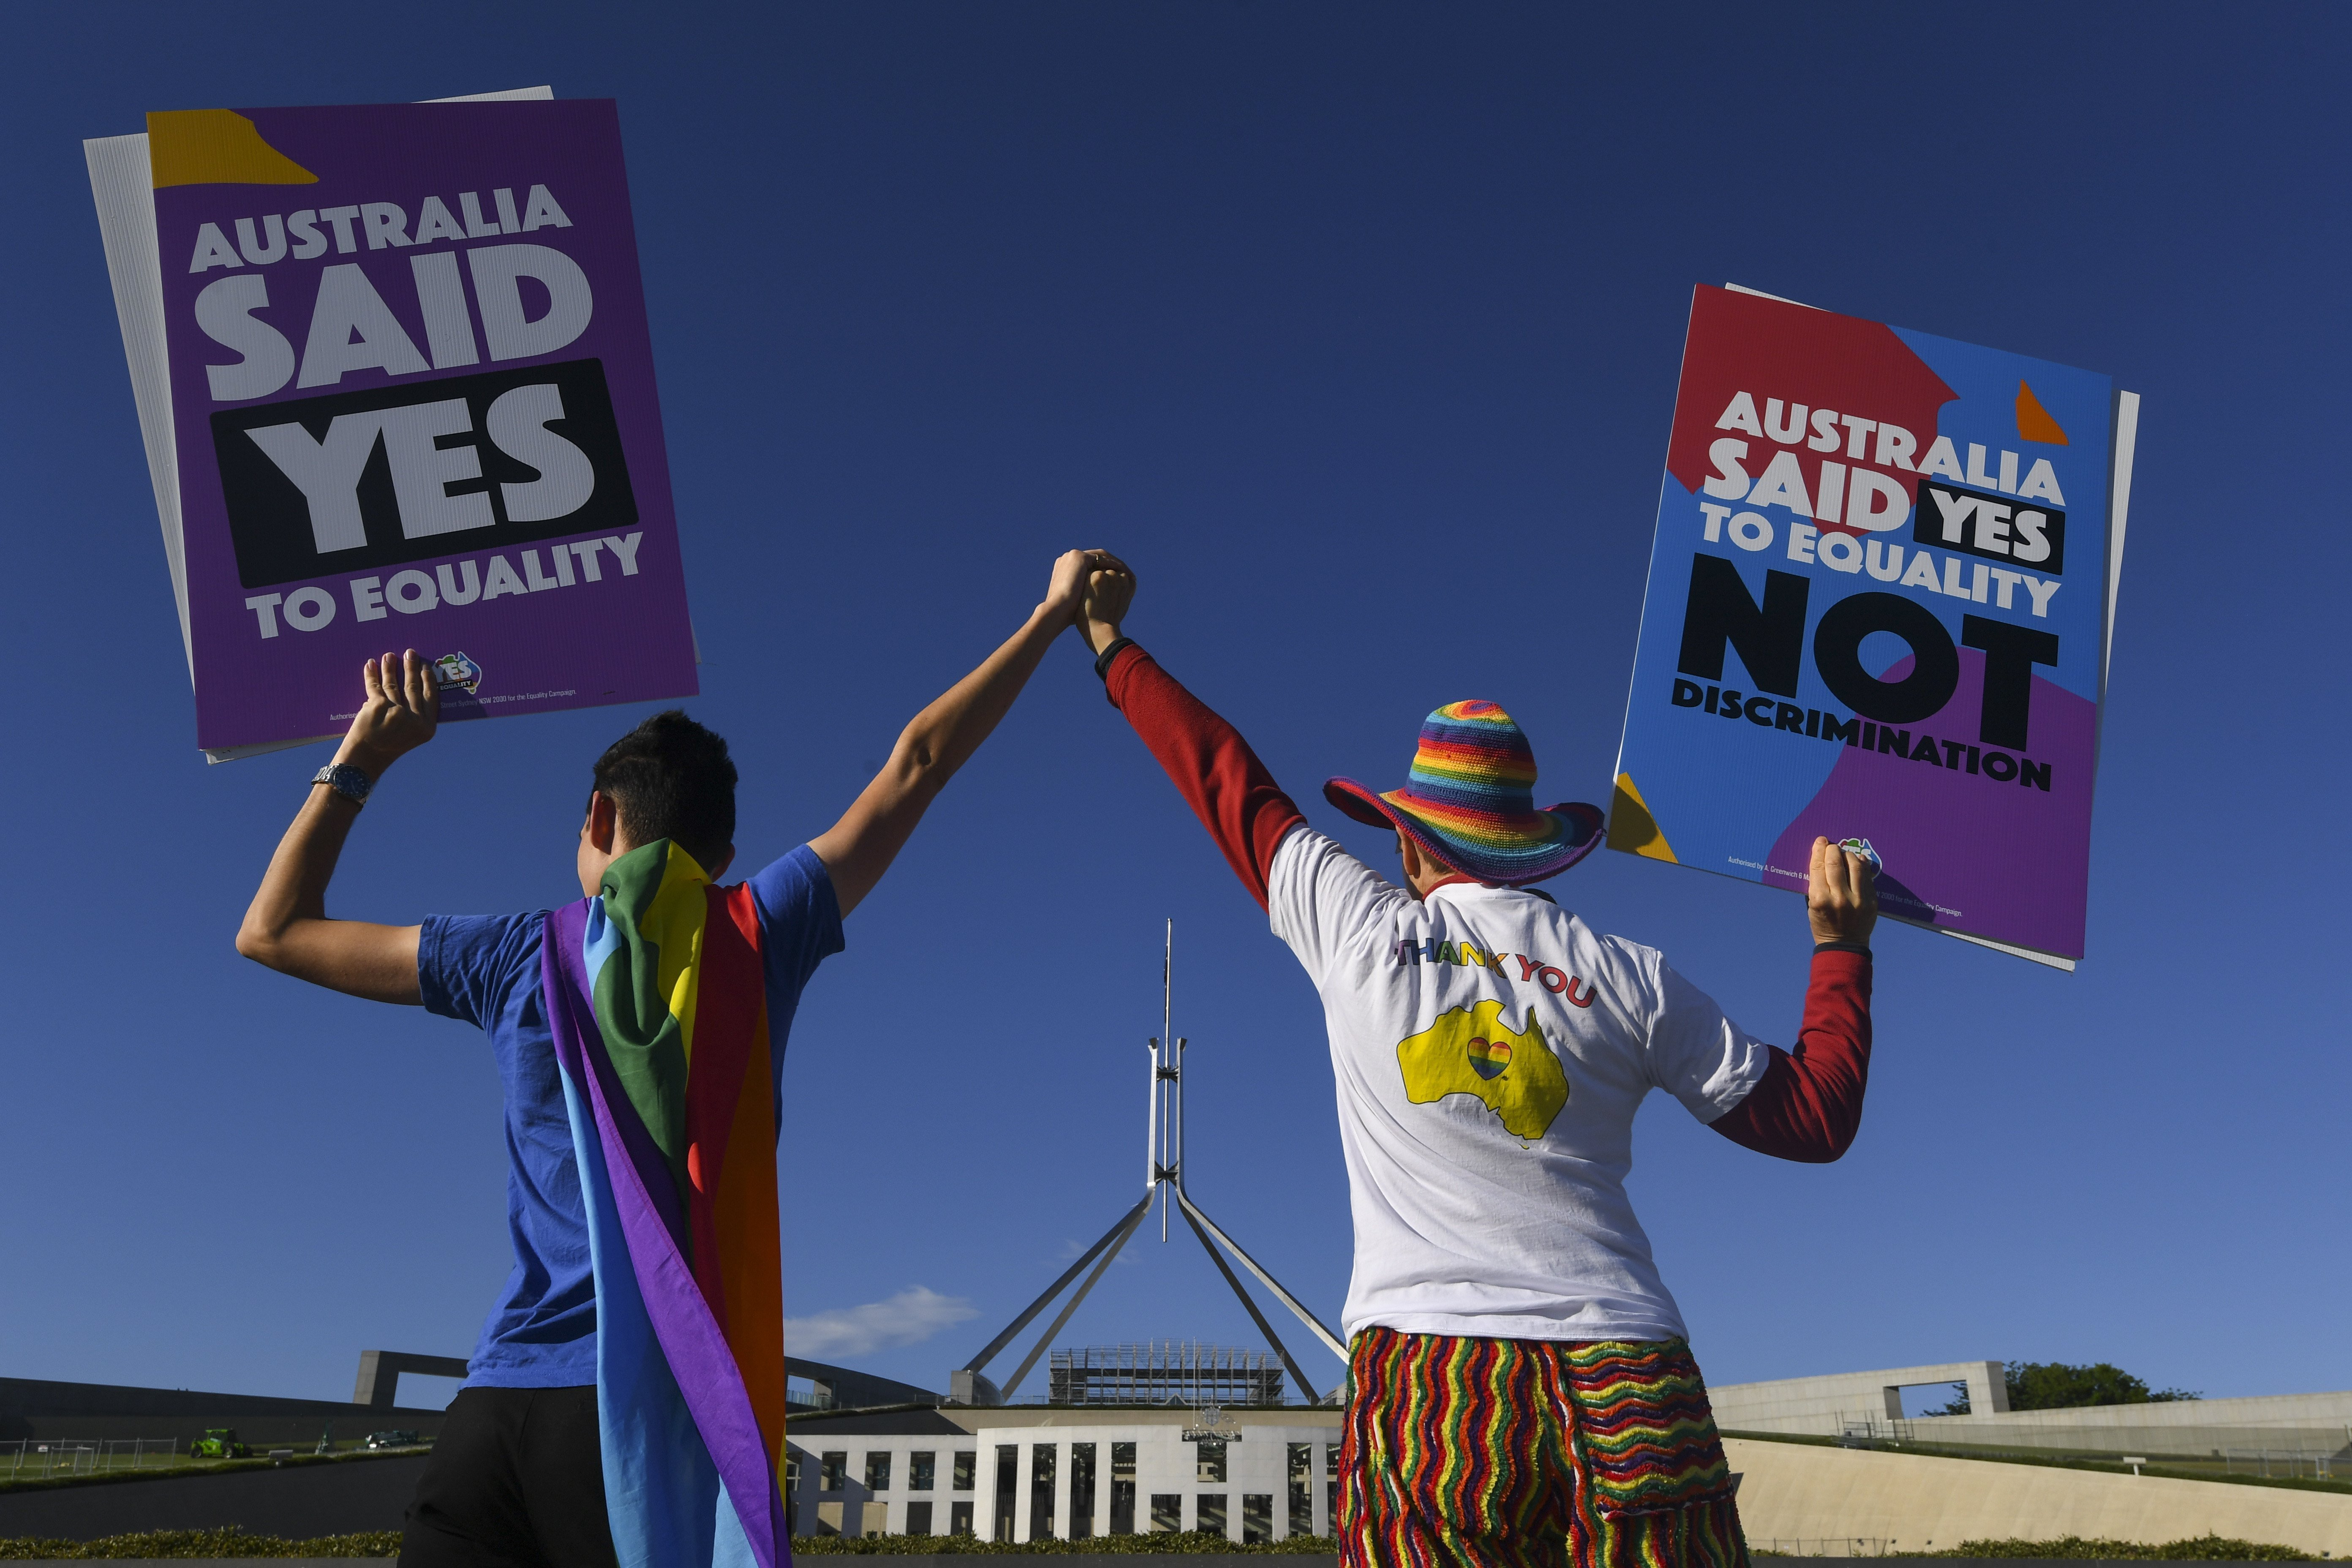 'Historic day' as Australia's parliament approves same-sex marriages